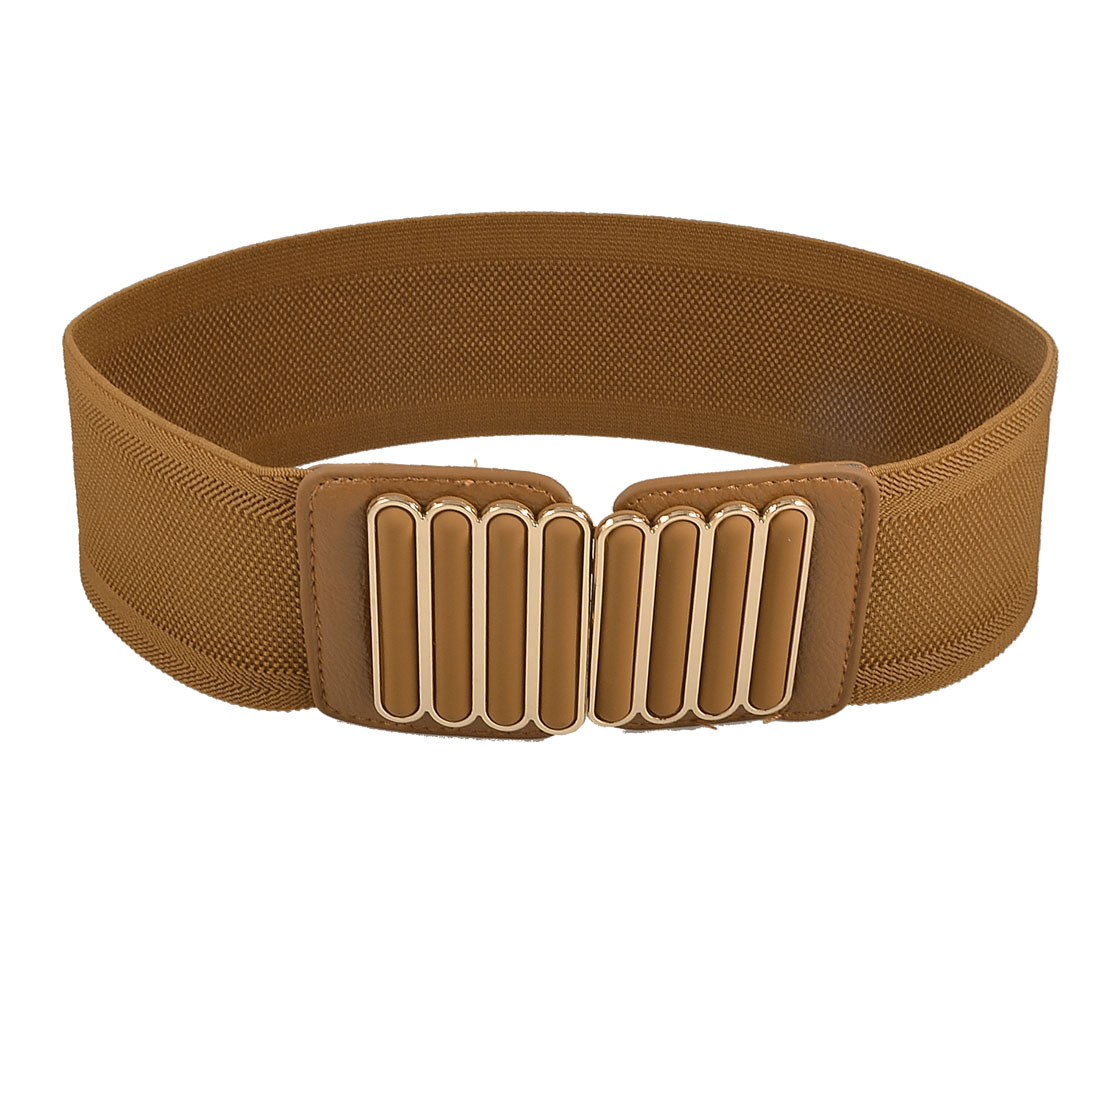 Lady Woman Metal Vertical Bars Decorated Brown Elastic Band Waist Belt